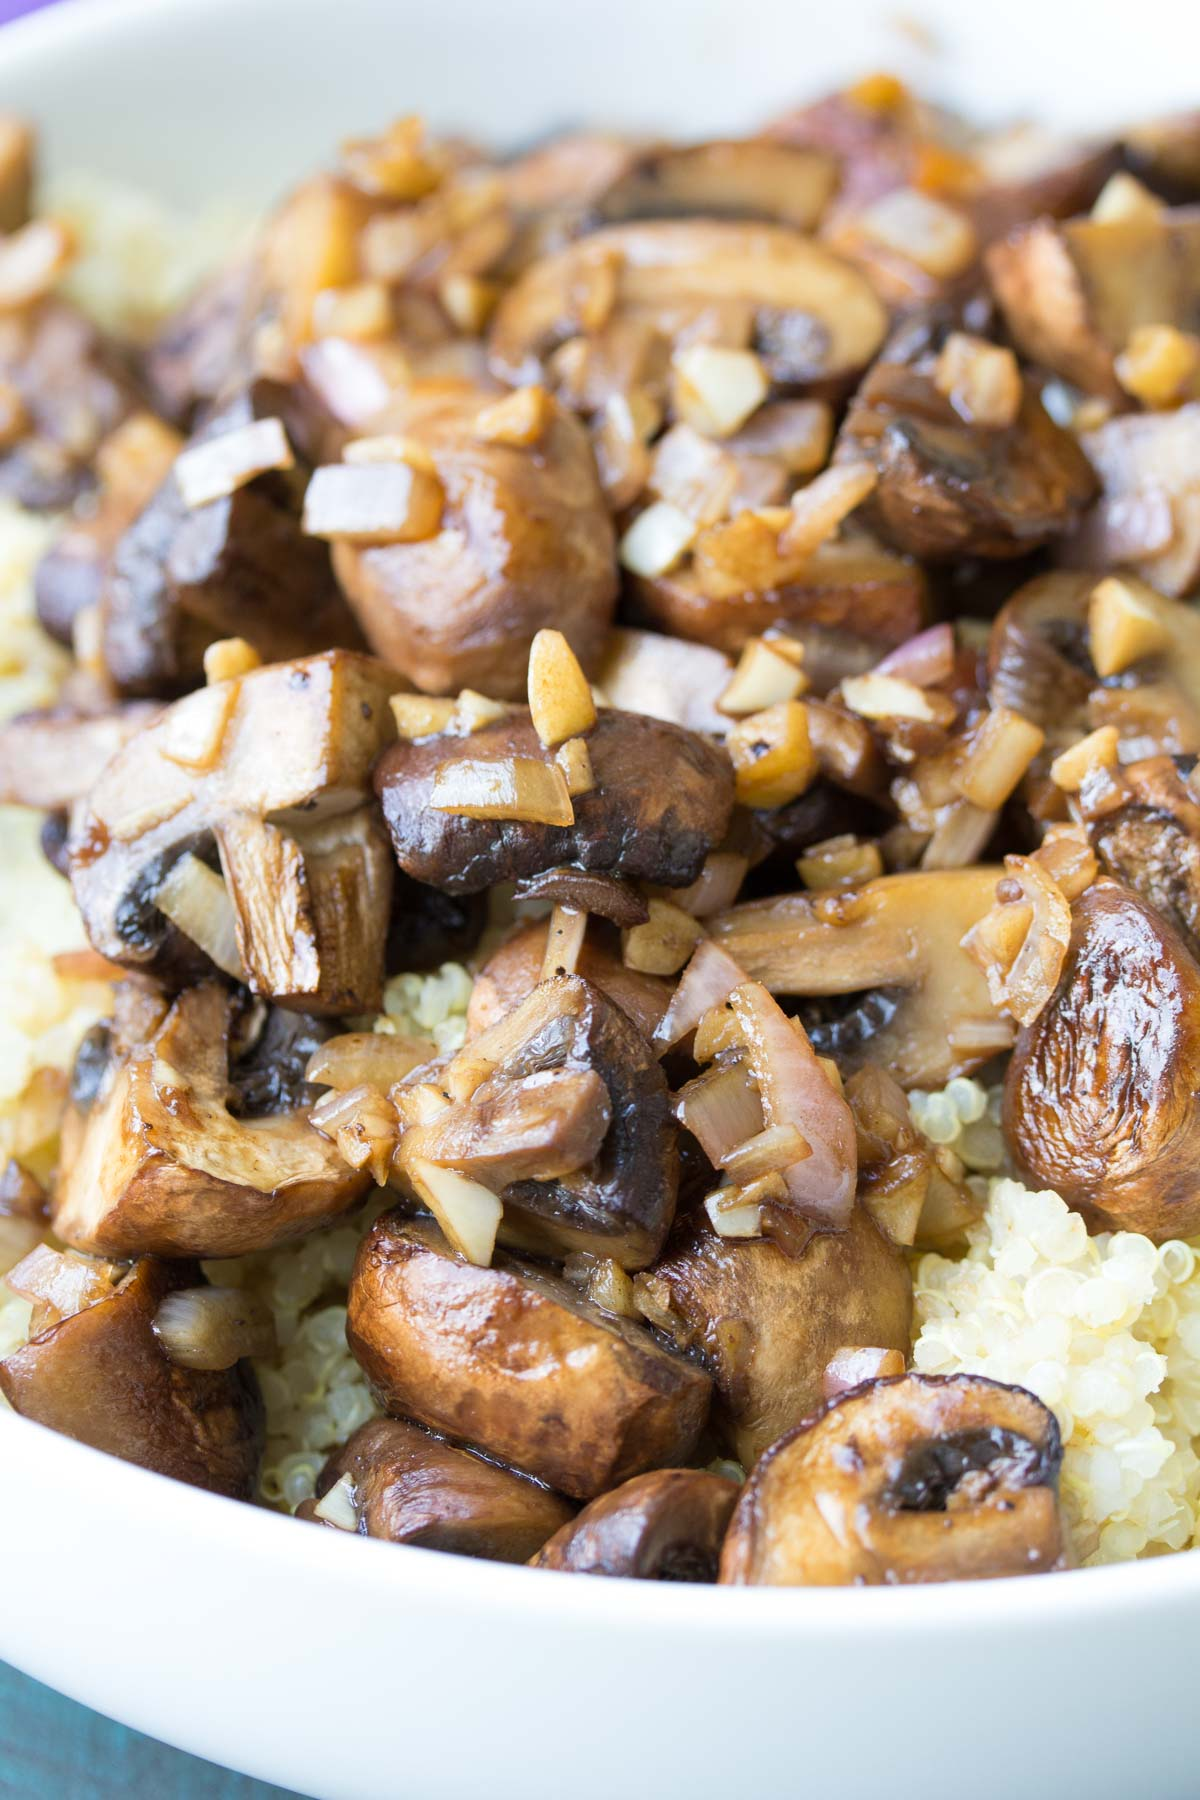 Balsamic Garlic Roasted Mushrooms and Quinoa. An easy holiday side dish recipe, plus ideas for make ahead lunch bowls!   www.kristineskitchenblog.com